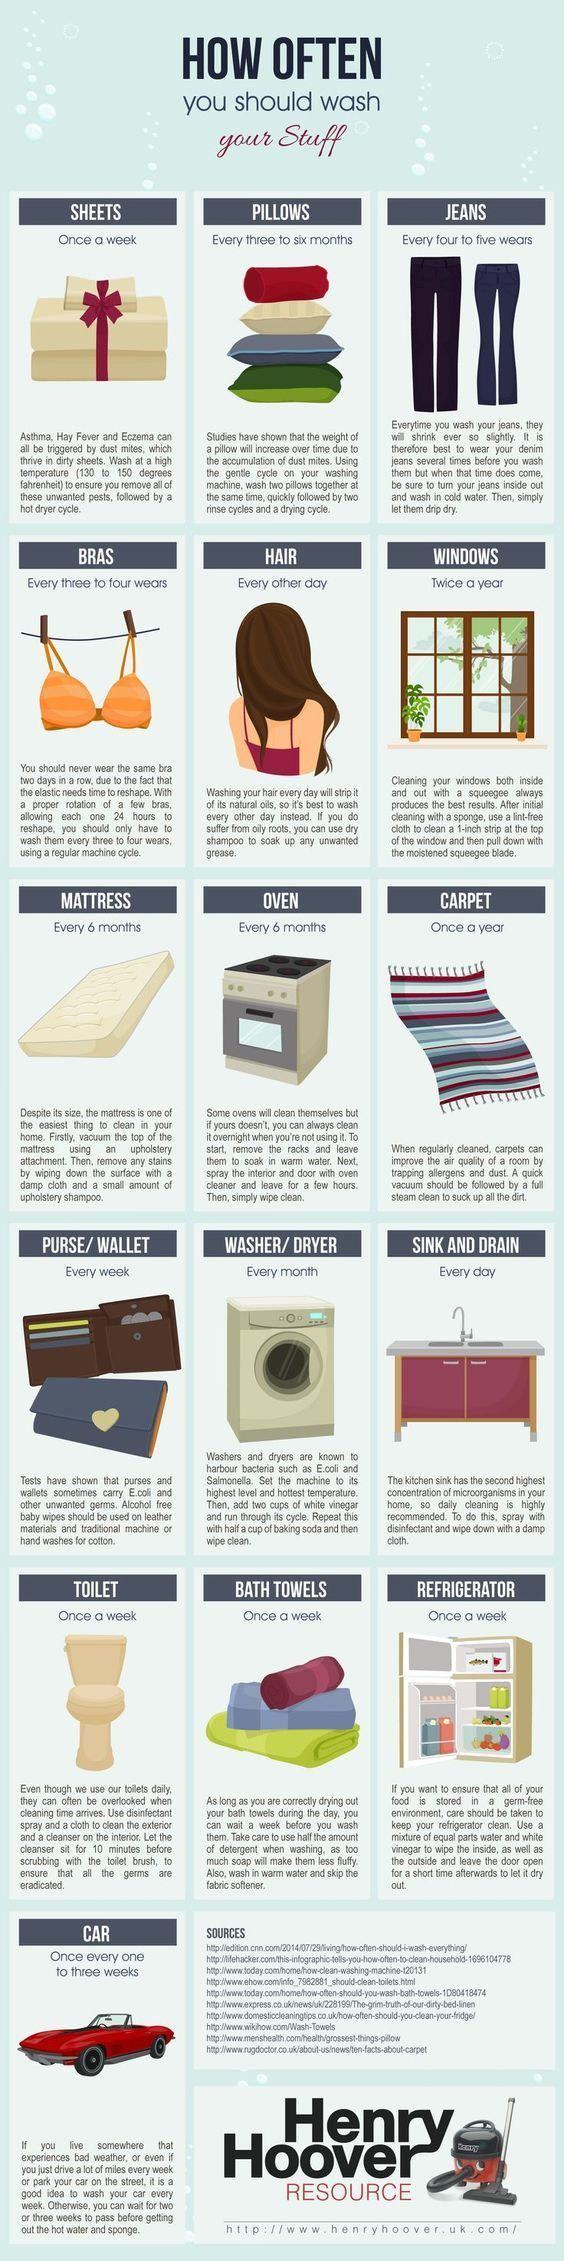 A quick-view infographic showing how often things should be washed, from your sheets to your windows, to your hair.